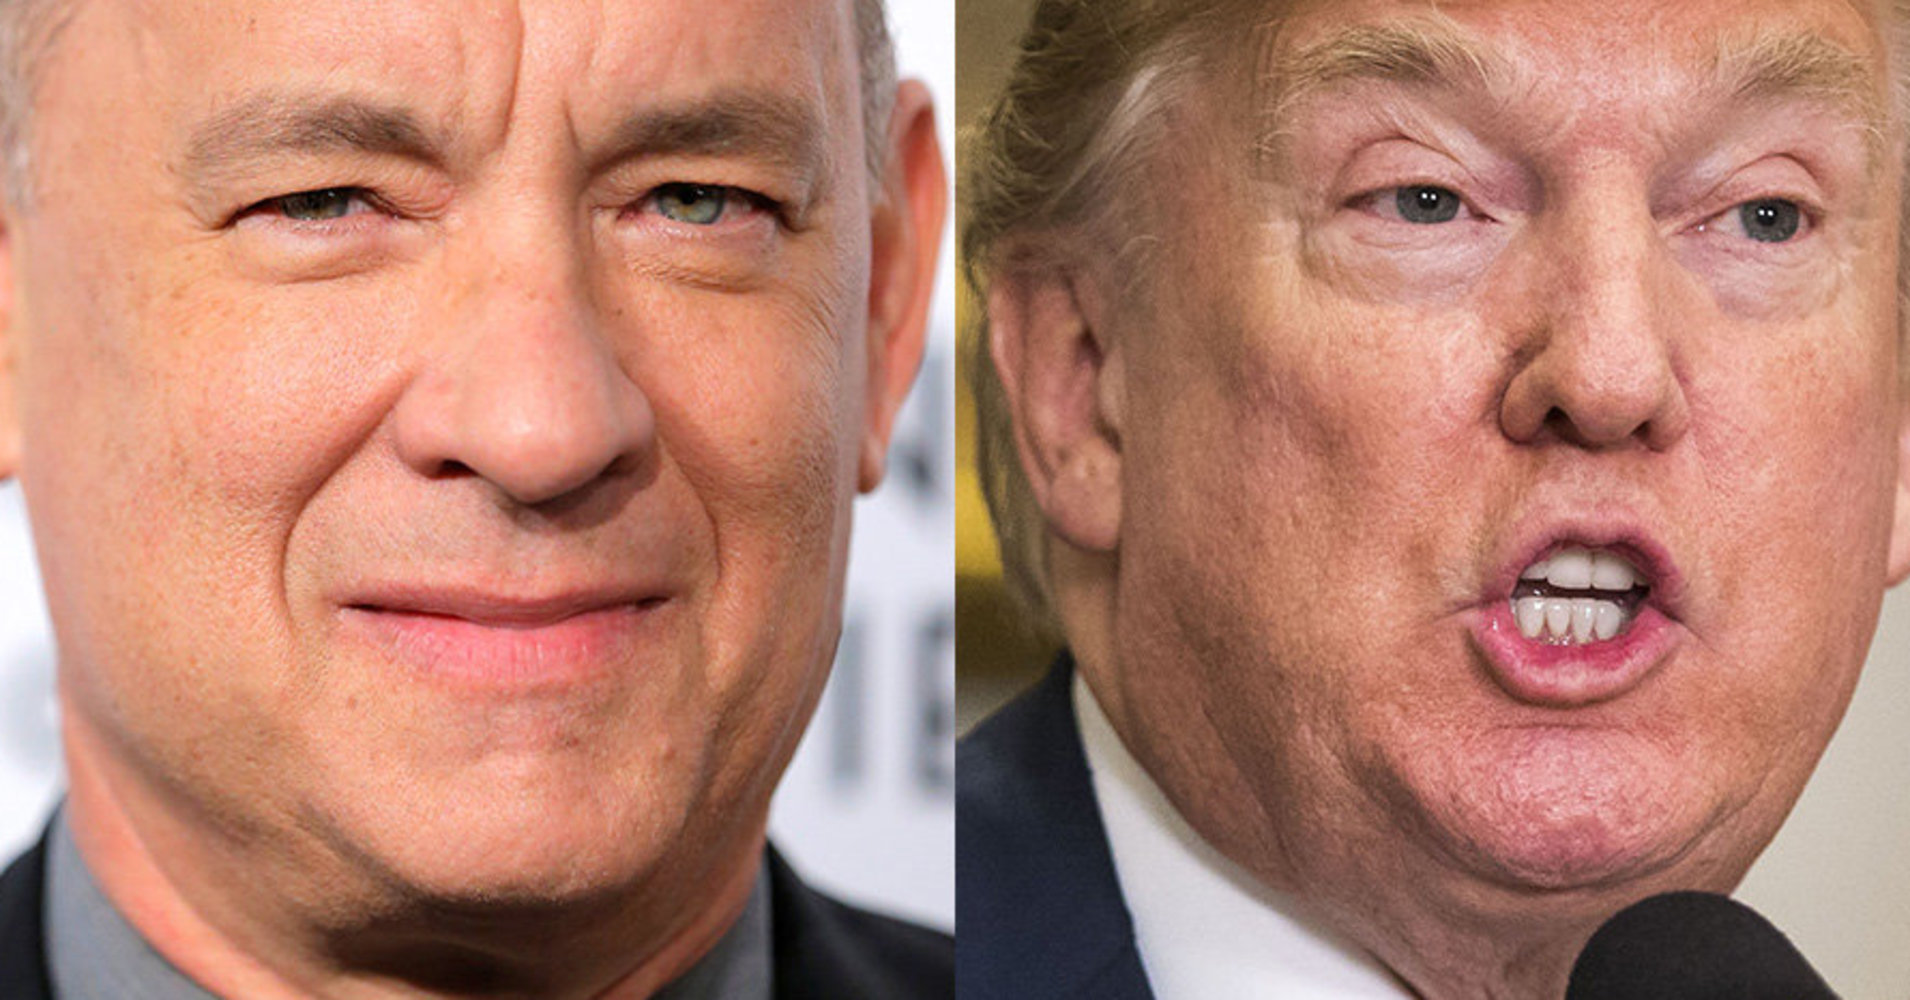 Tom Hanks: Trump's 'Guerrilla War' On Press Could Lead To 'Very Scary Territory'